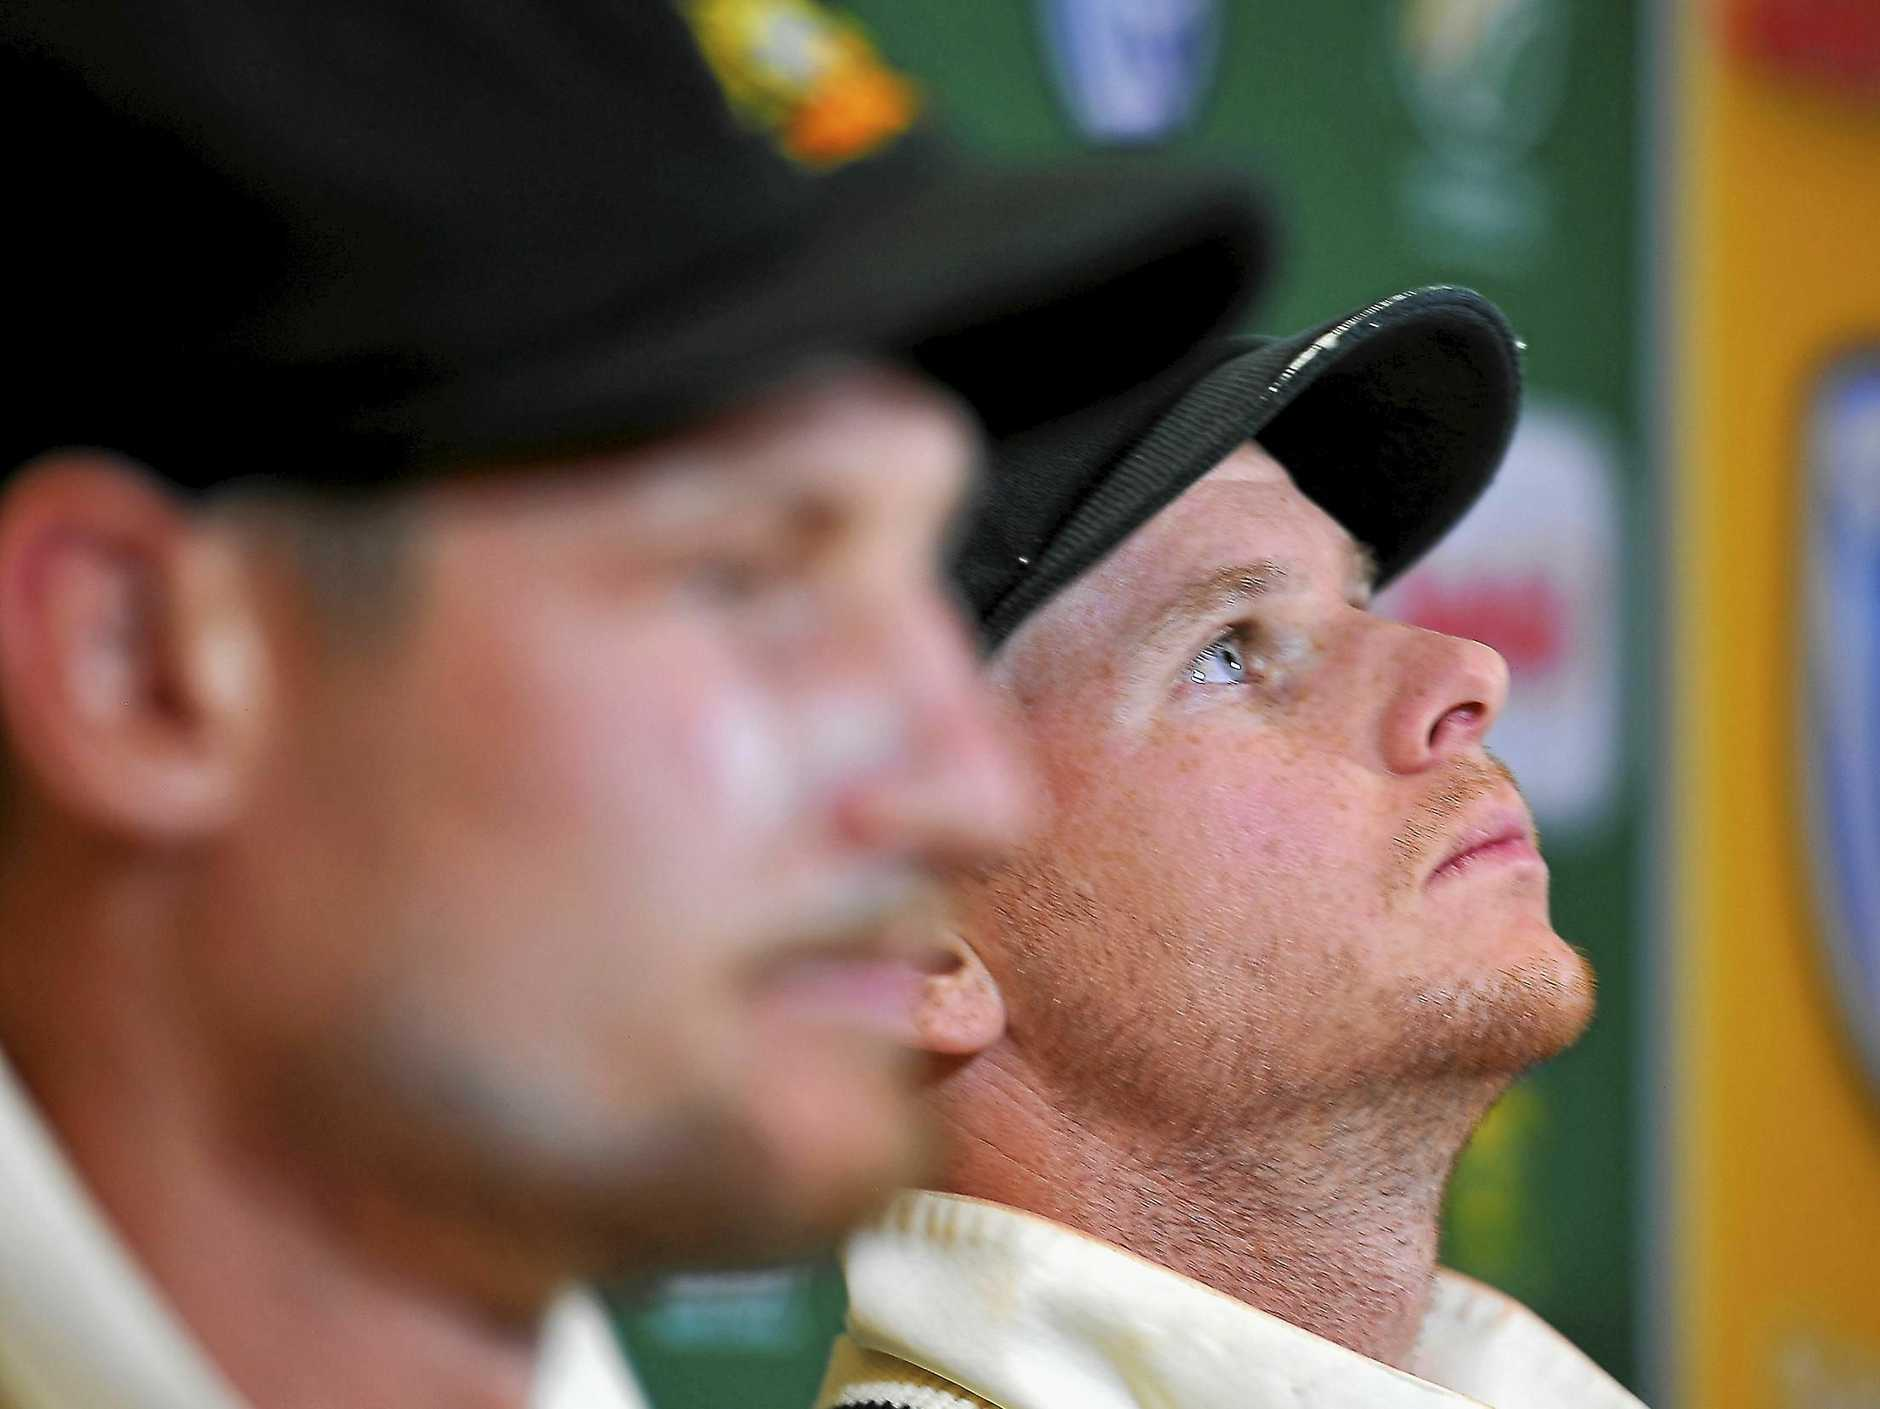 CAPE TOWN, SOUTH AFRICA - MARCH 24: Steven Smith (capt) and Cameron Bancroft (L)  of Australia during day 3 of the 3rd Sunfoil Test match between South Africa and Australia at PPC Newlands on March 24, 2018 in Cape Town, South Africa. Australian batsman Cameron Bancroft admits to attempting to change the condition of the ball by using a foreign object.  (Photo by Ashley Vlotman/Gallo Images/Getty Images)